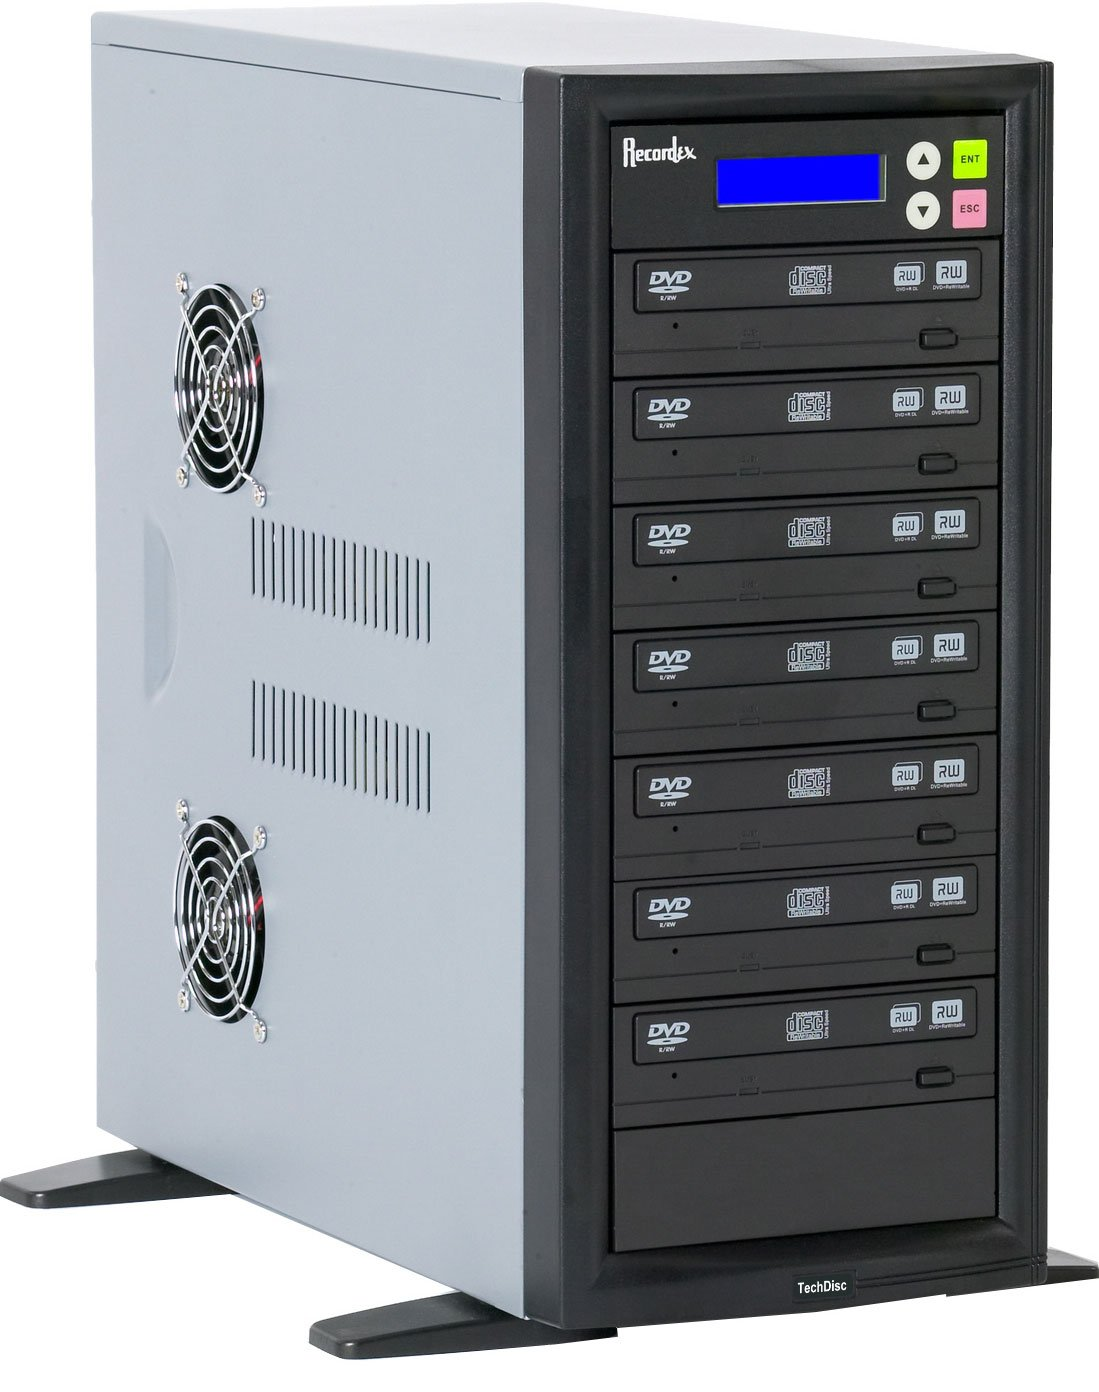 CD/DVD Duplicator with 7 Target Drives, 250 GB Hard Drive